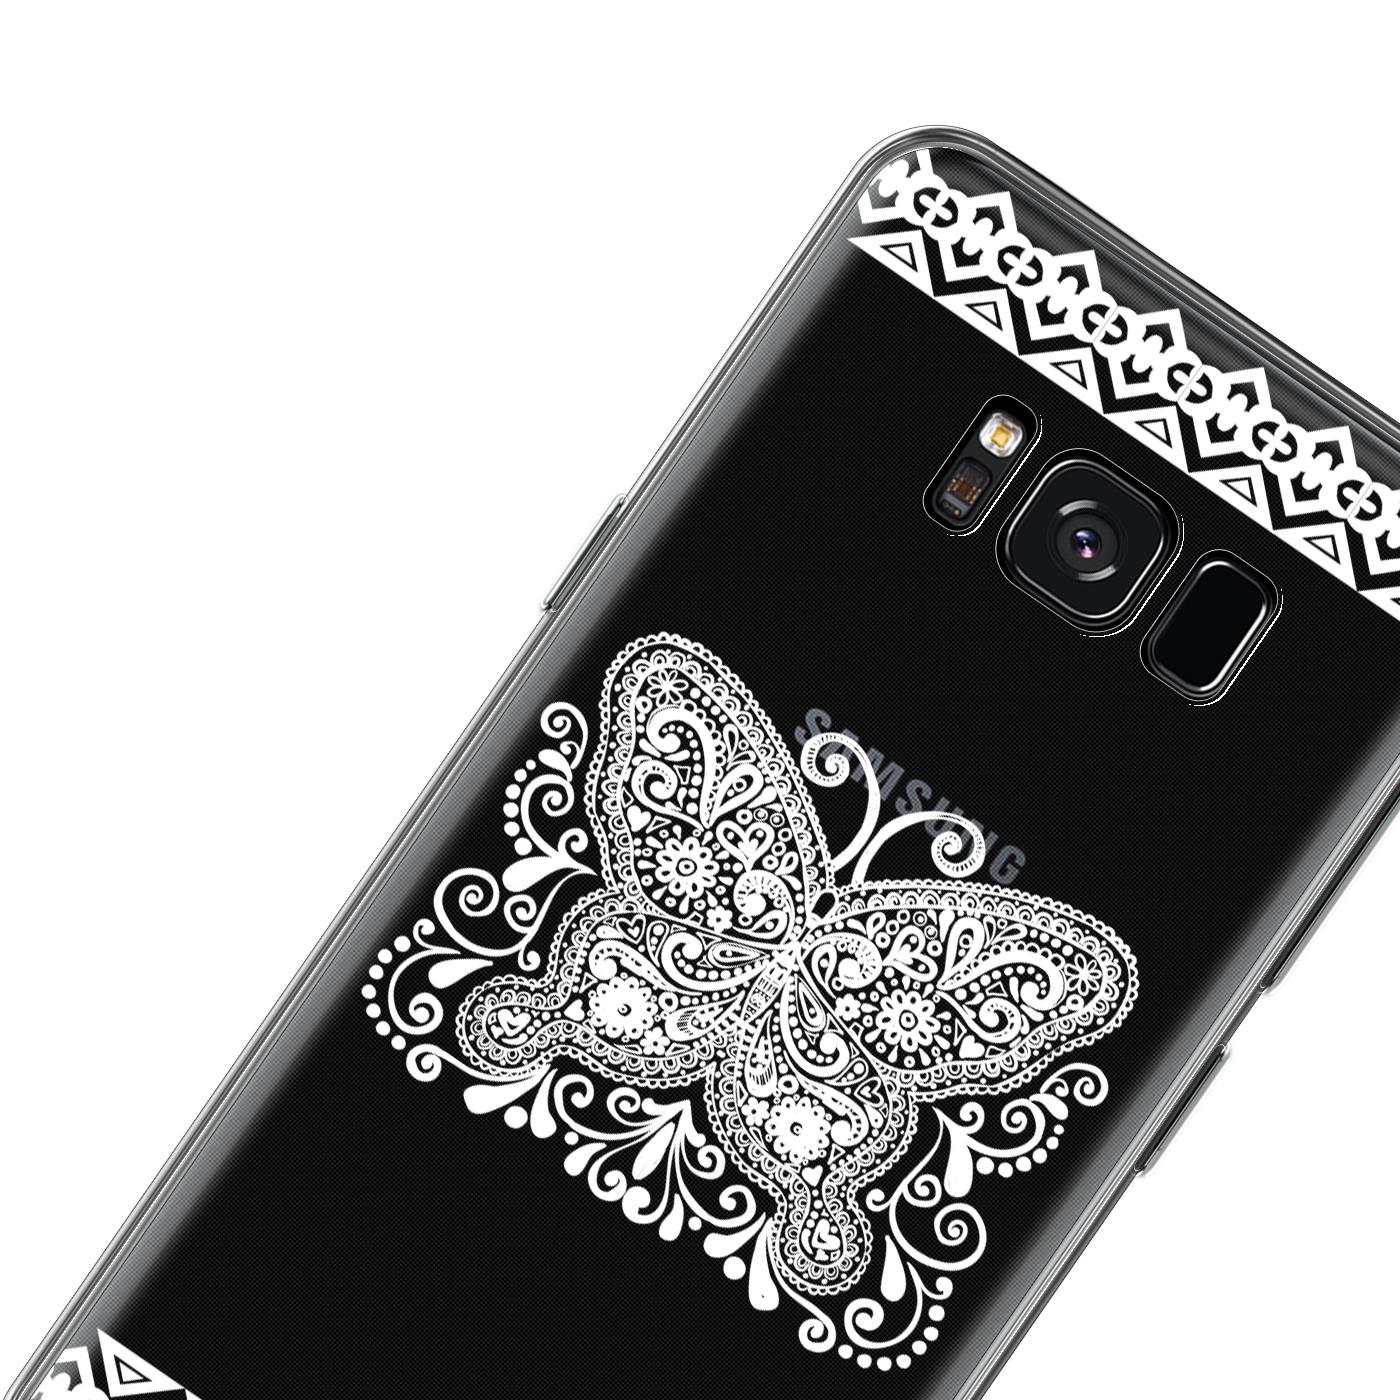 Silicone-Motif-coque-etui-de-protection-telephone-portable-pour-Samsung-Galaxy